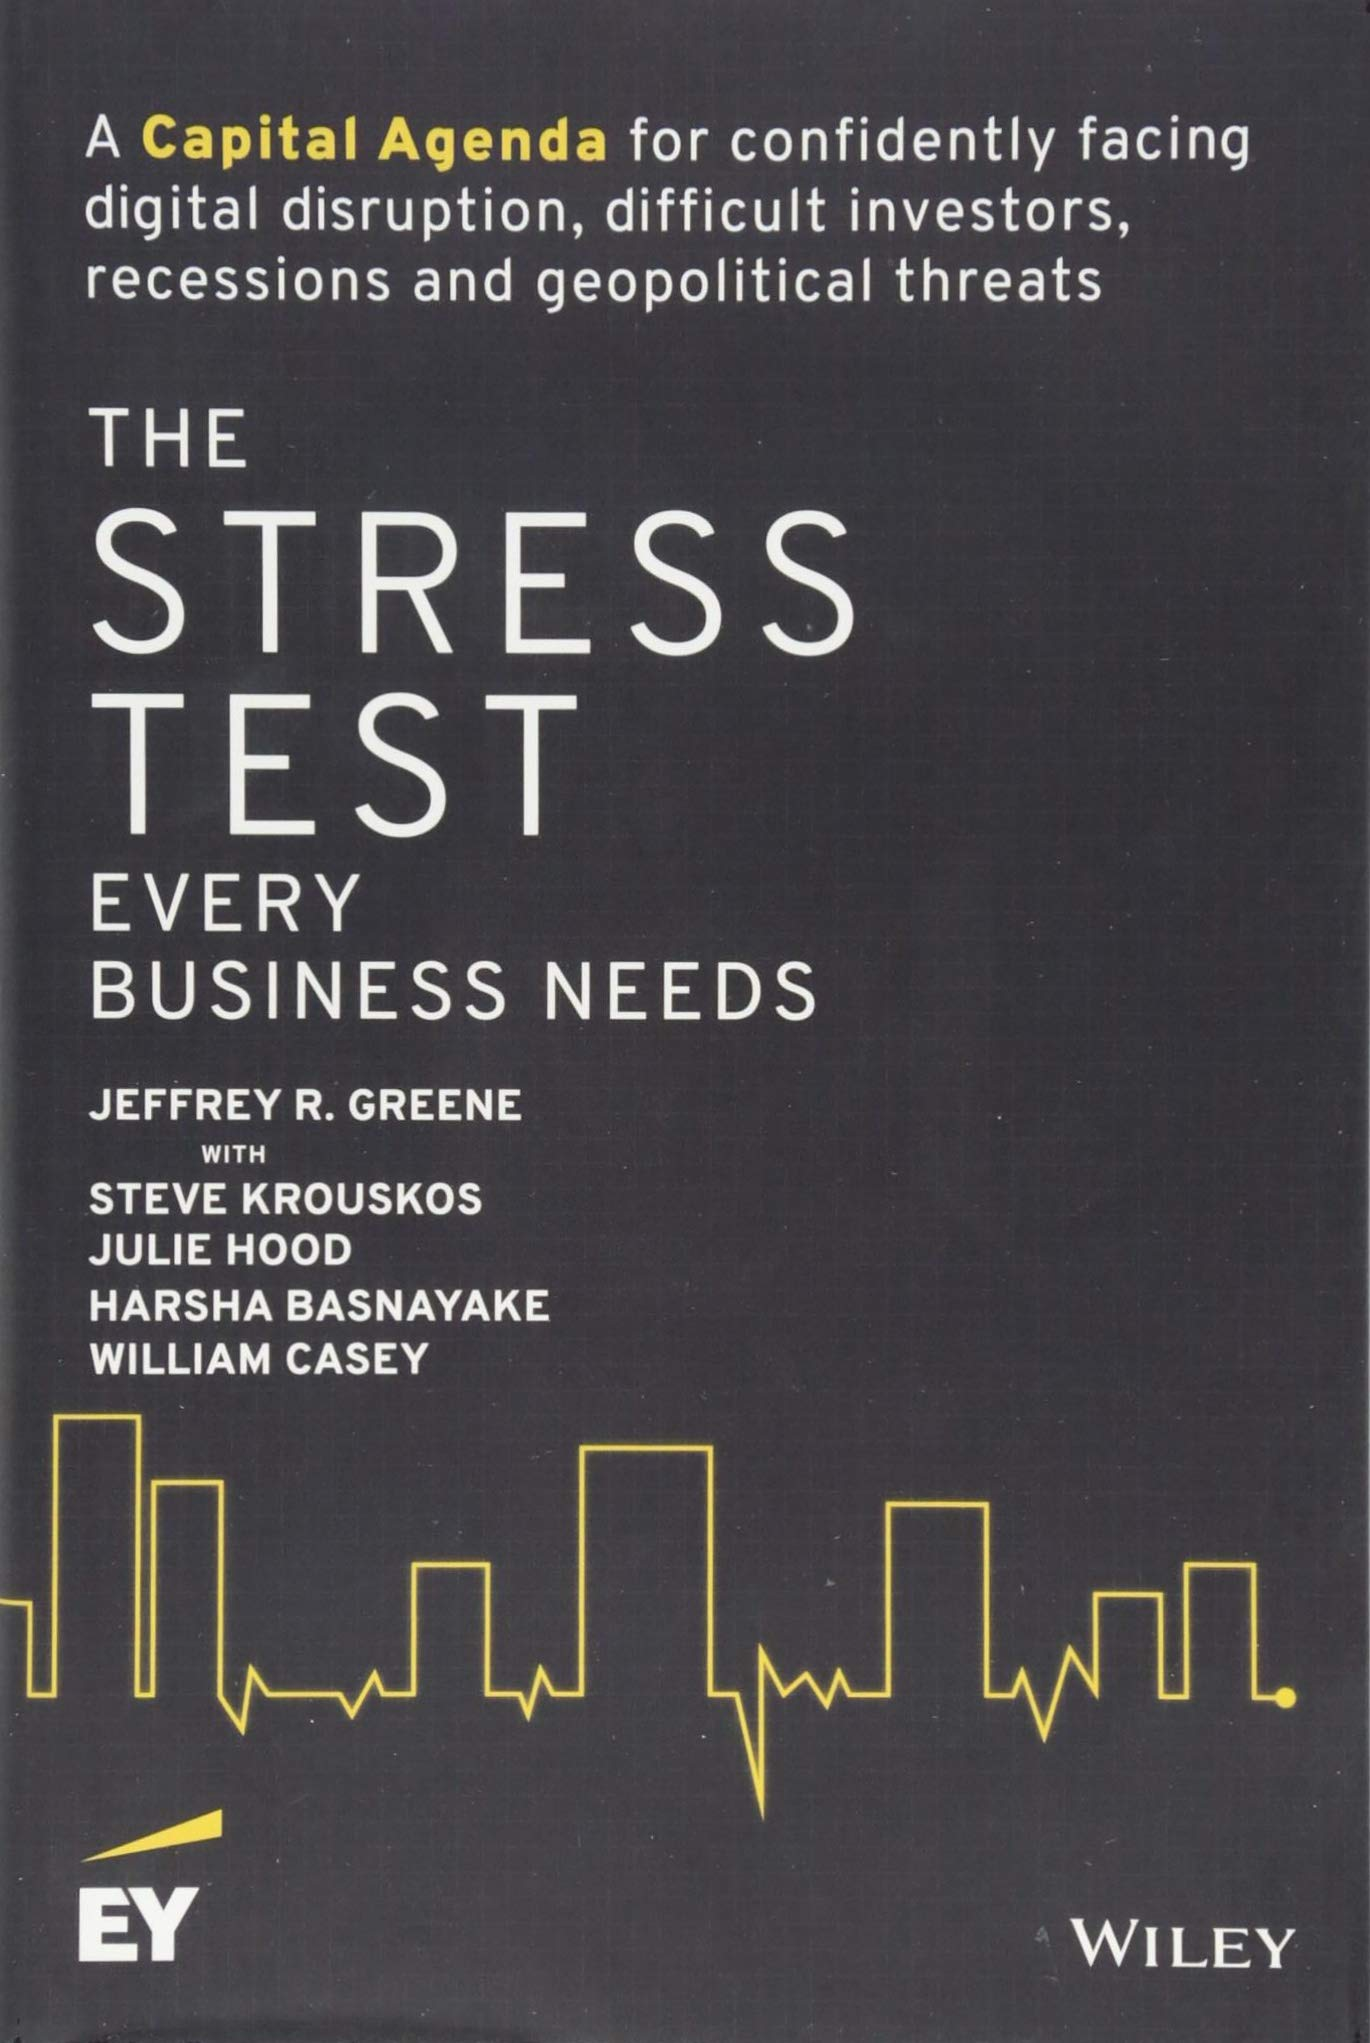 The Stress Test Every Business Needs: A Capital Agenda for ...